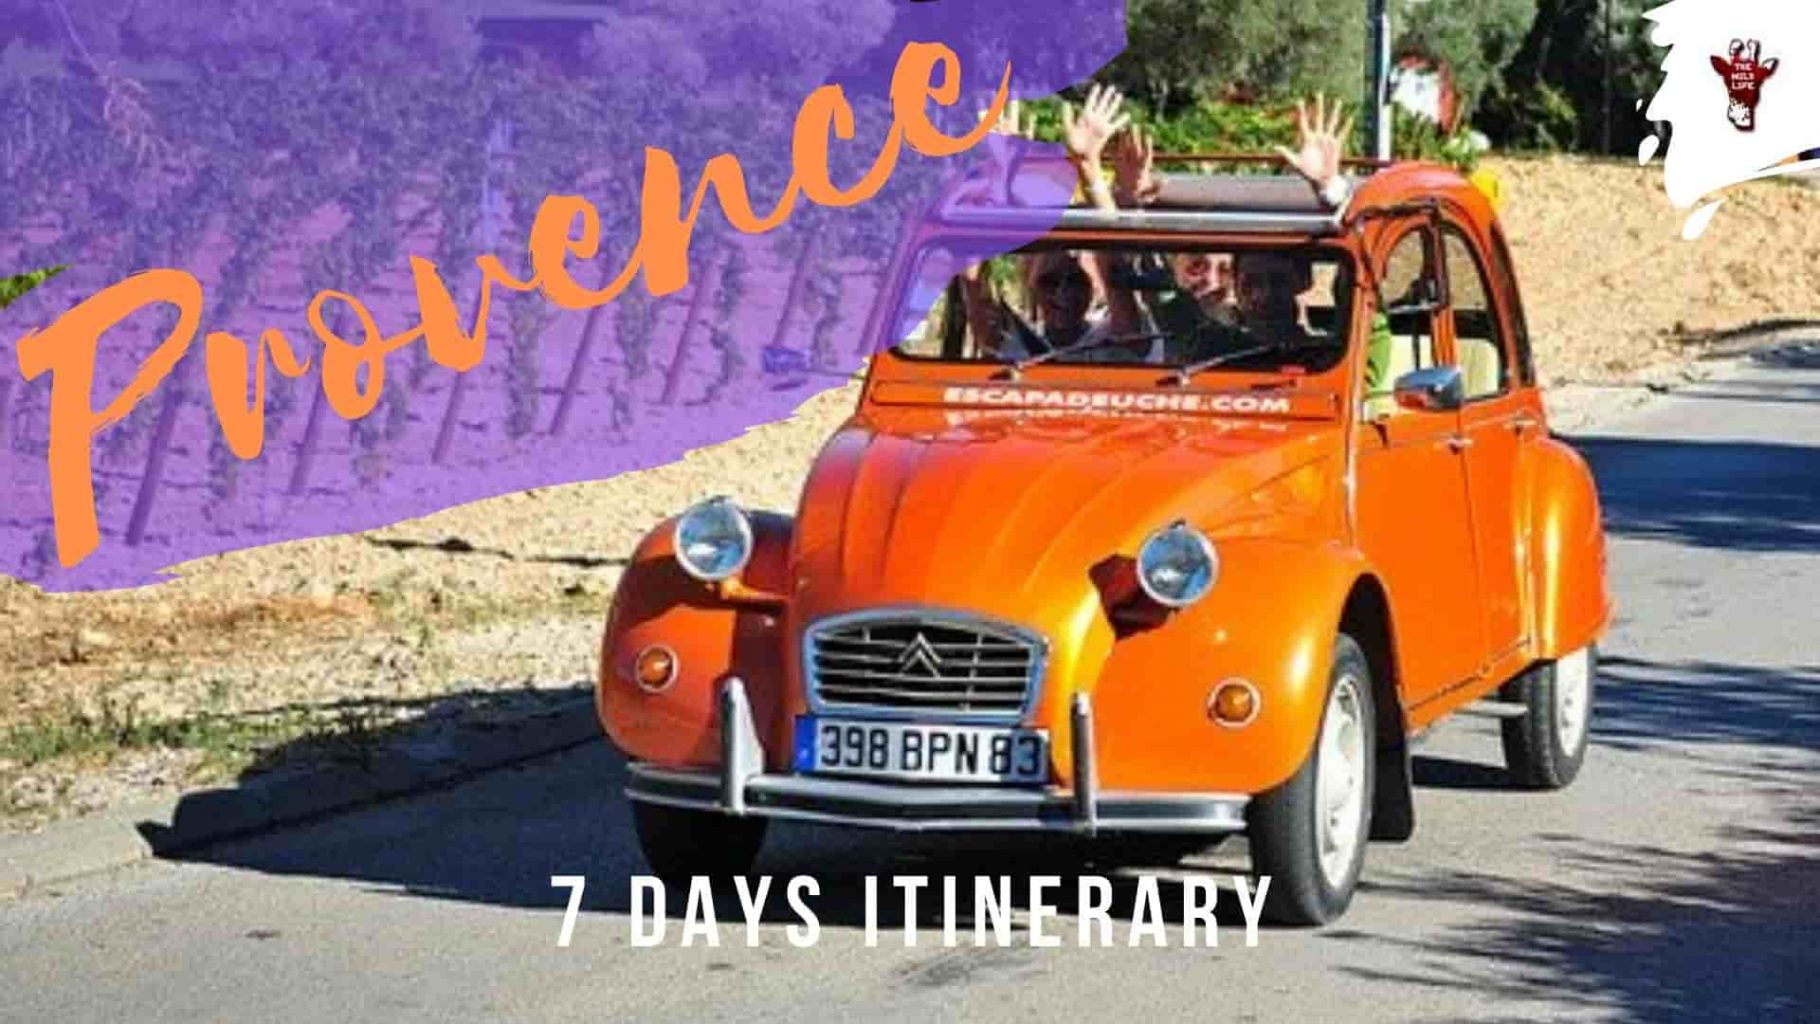 South of France 7 days itinerary